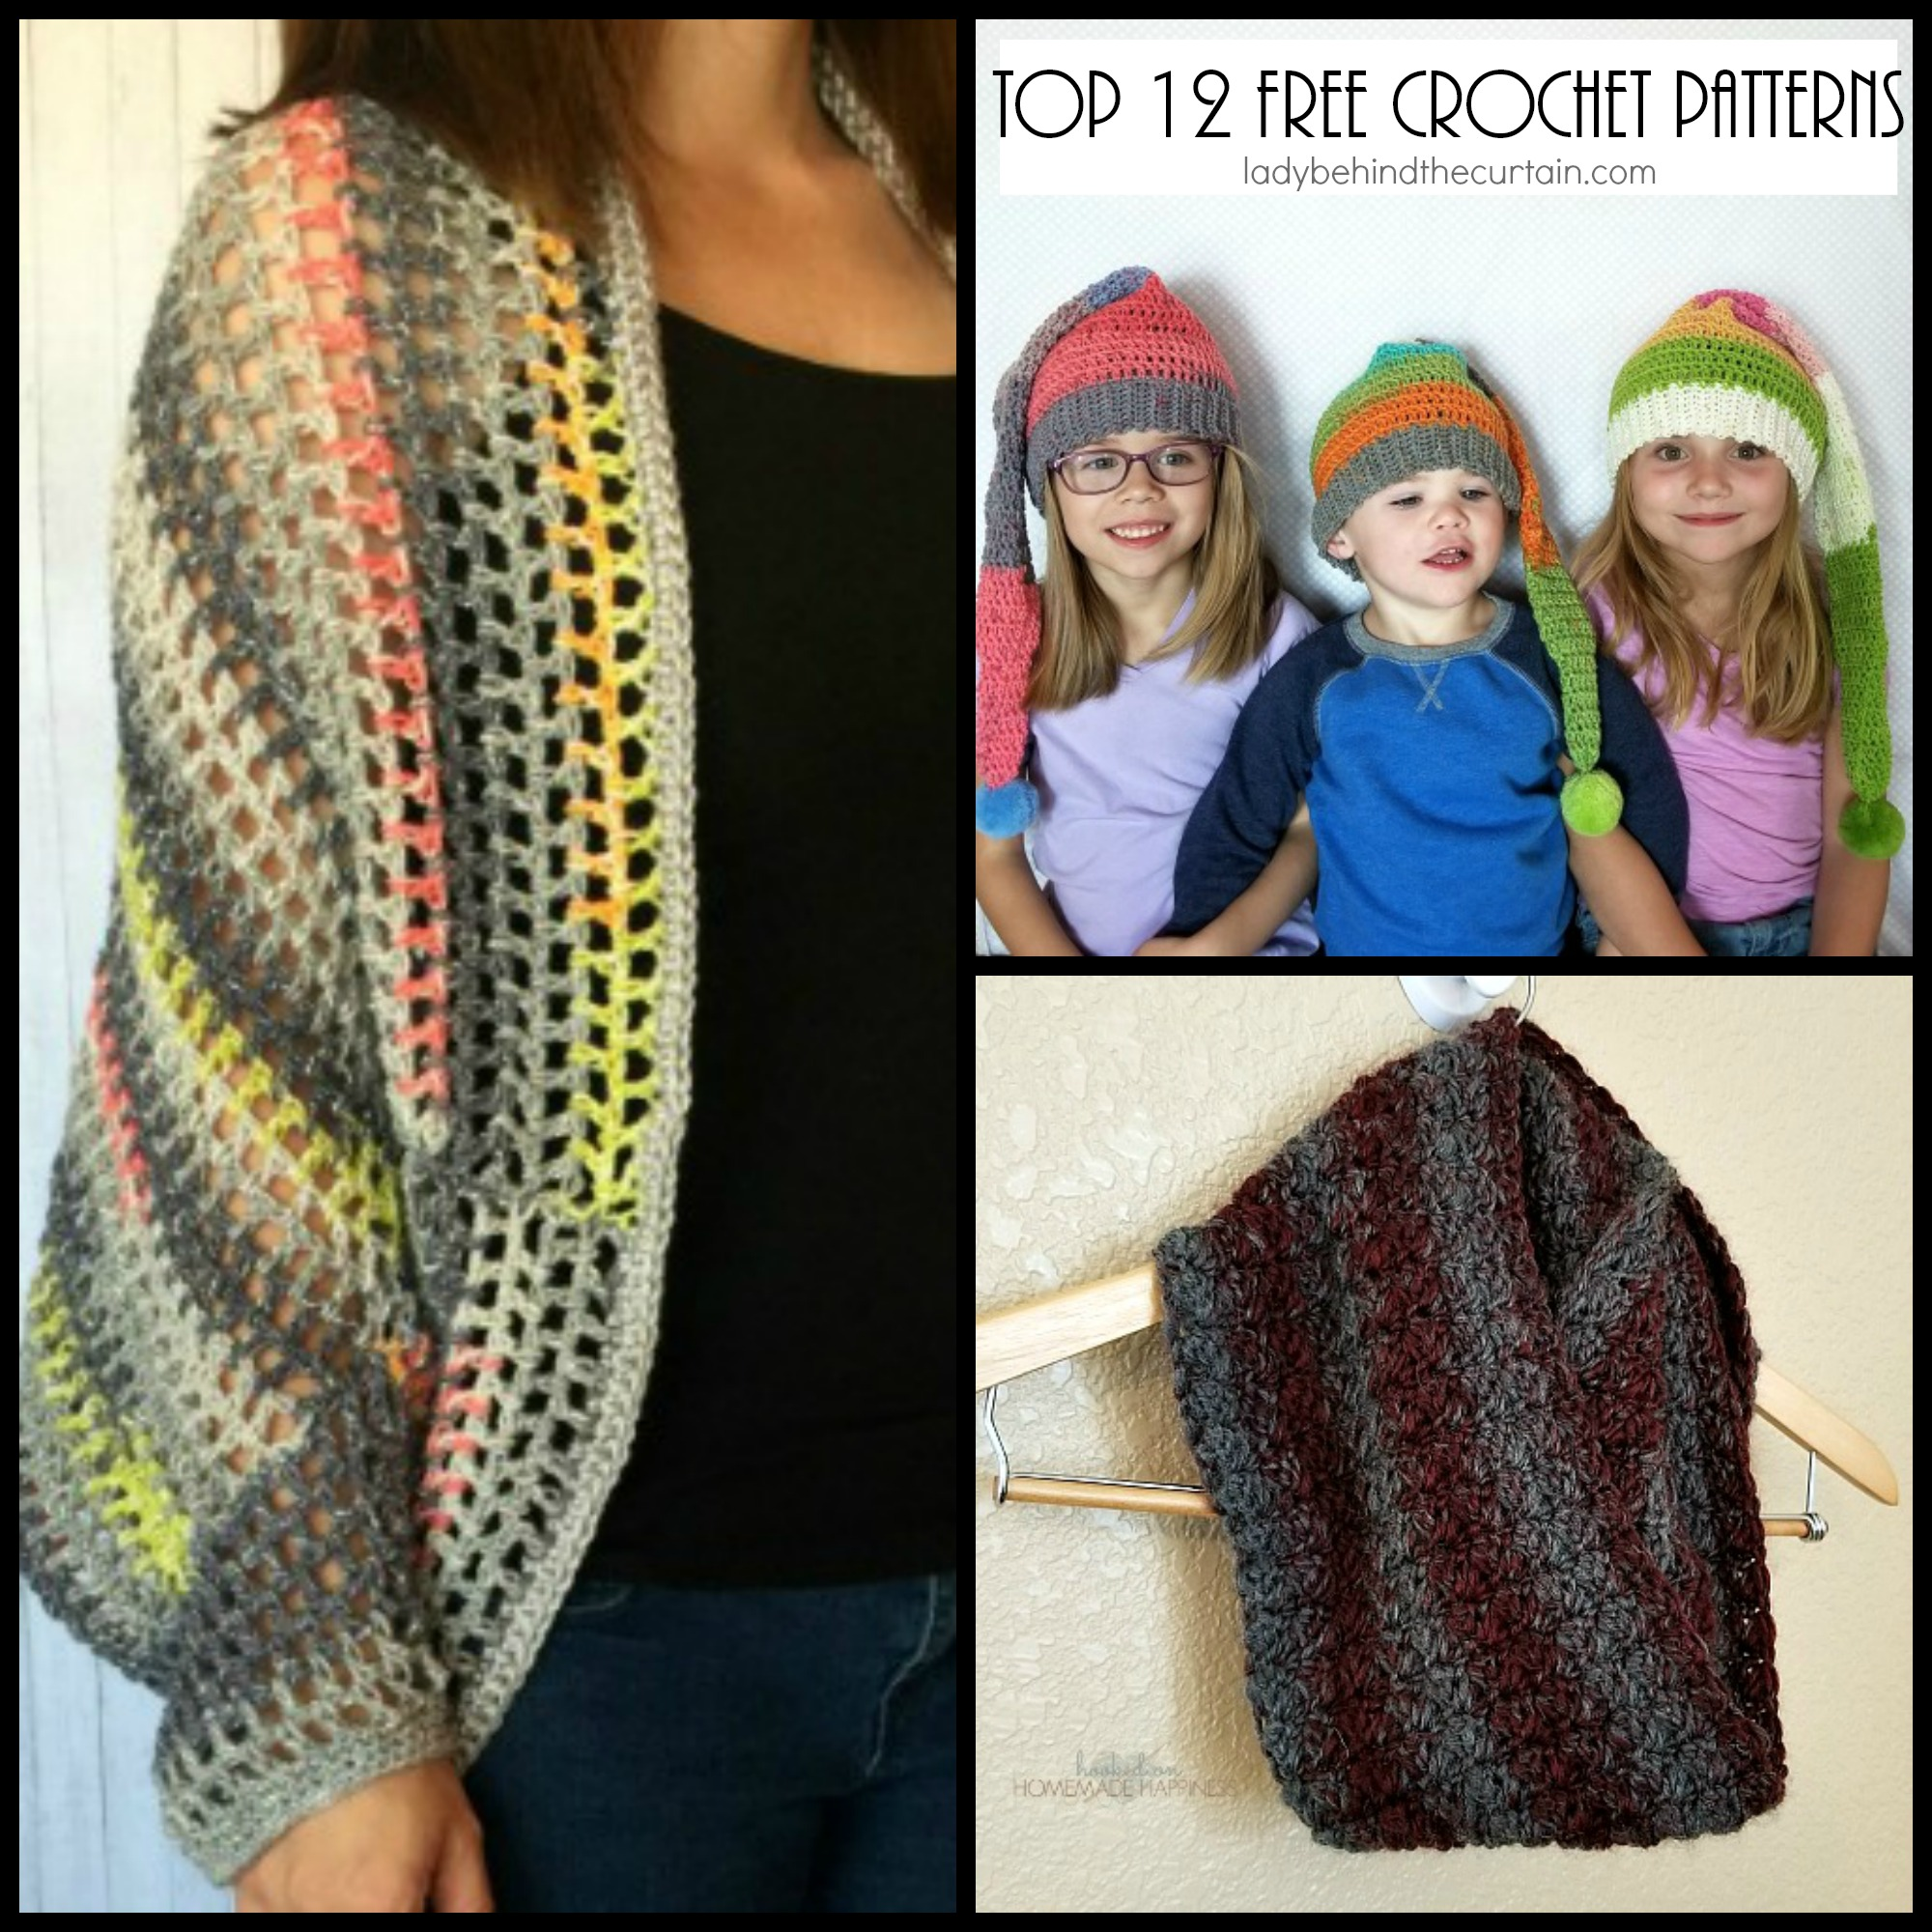 Top 12 Free Crochet Patterns